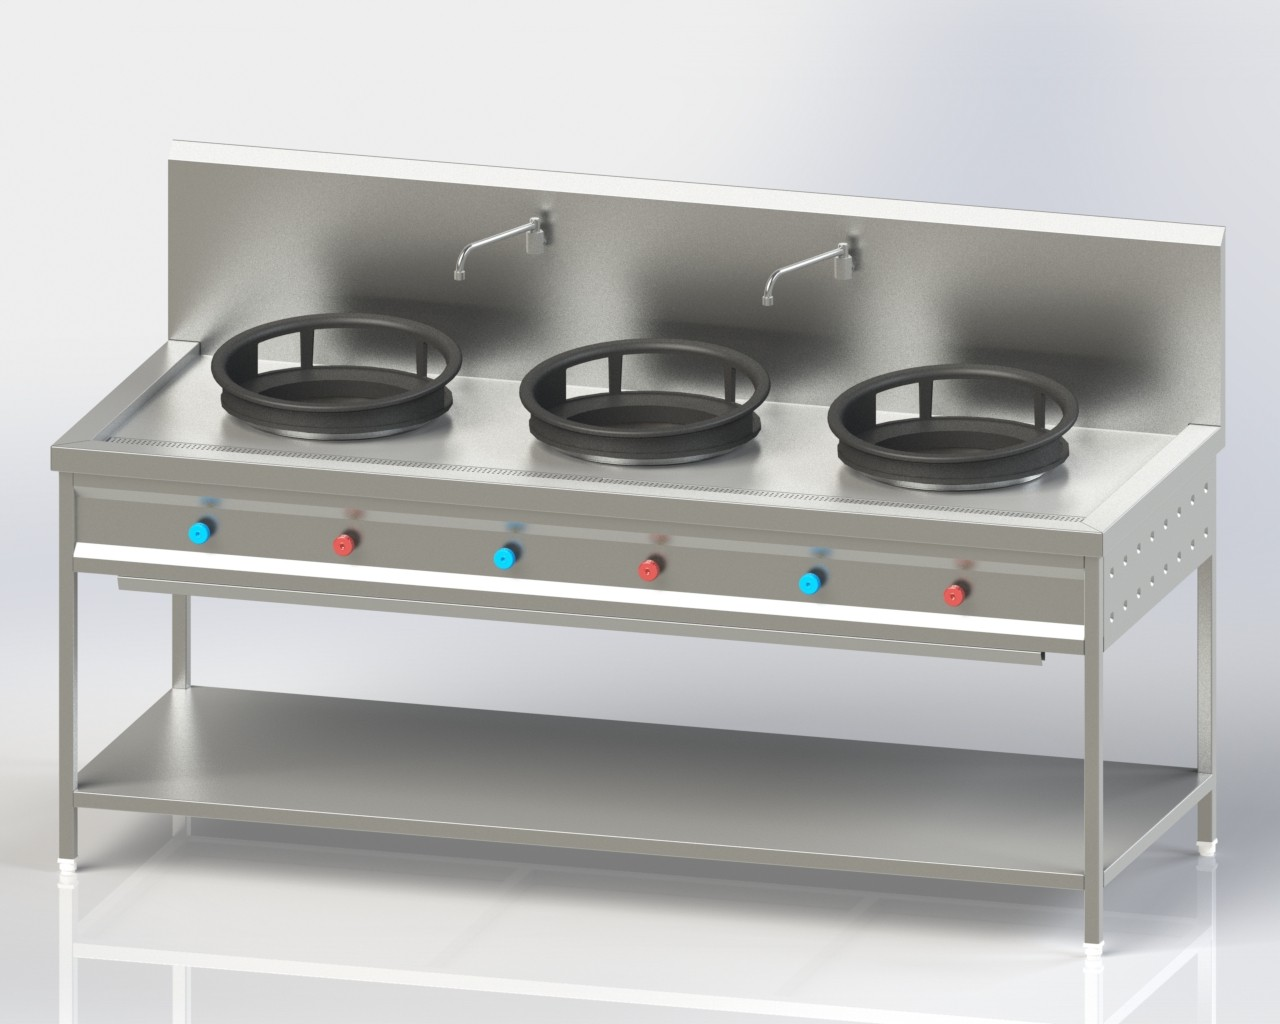 Three Burner Chineses Cooking Range